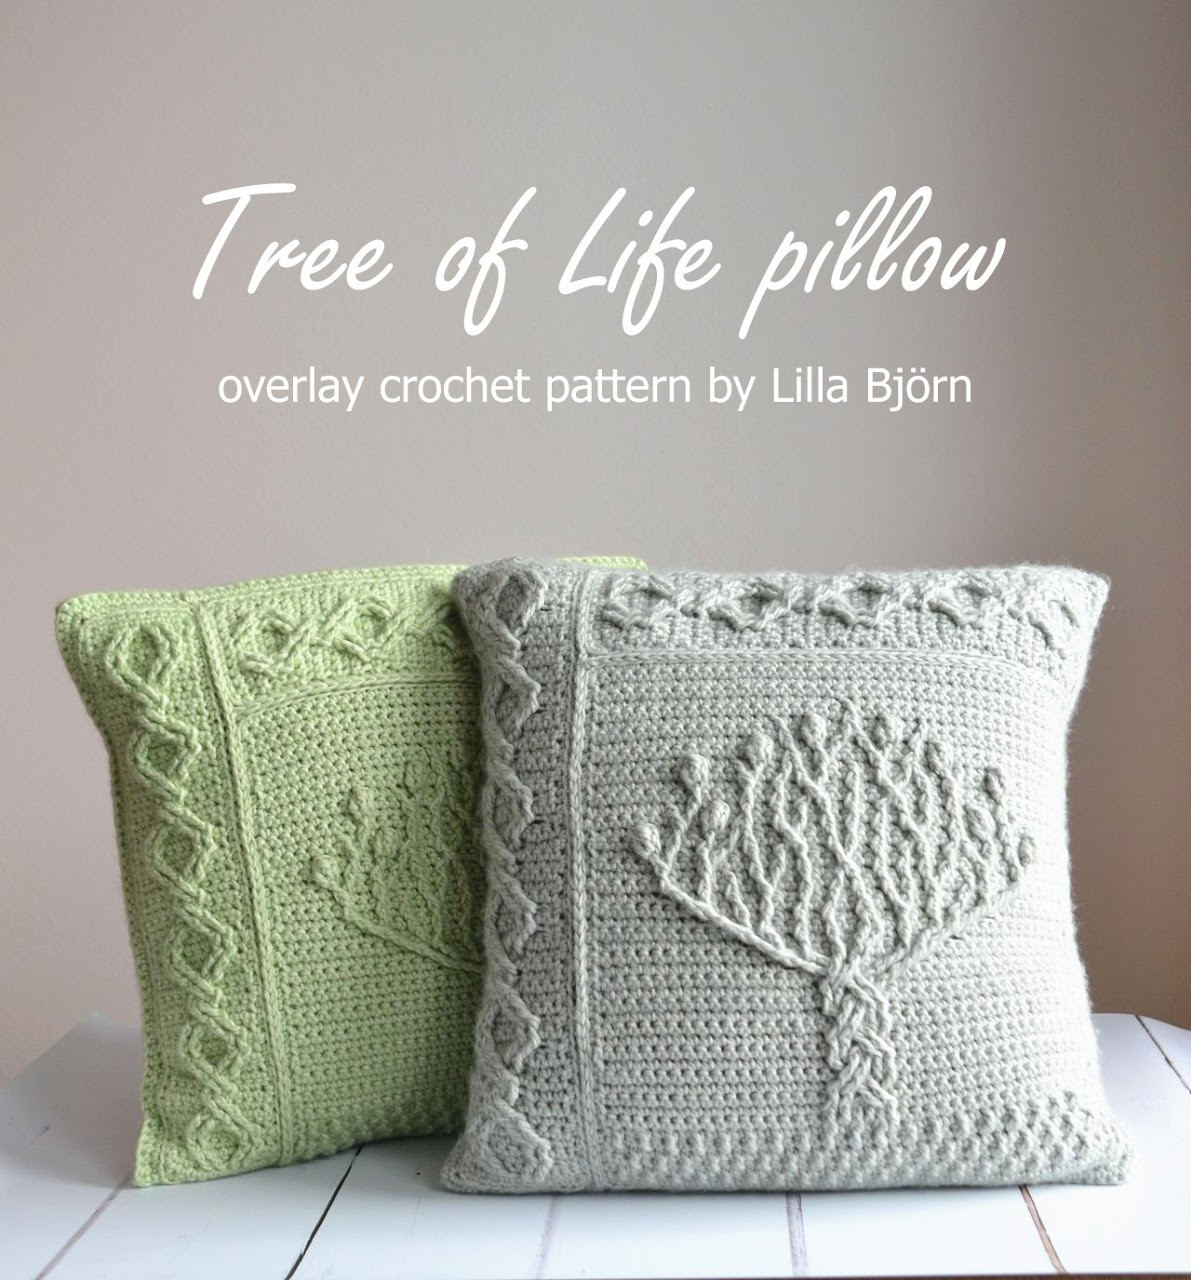 New Crochet Patterns Luxury Tree Of Life Pillow – New Overlay Crochet Pattern Of Perfect 50 Ideas New Crochet Patterns